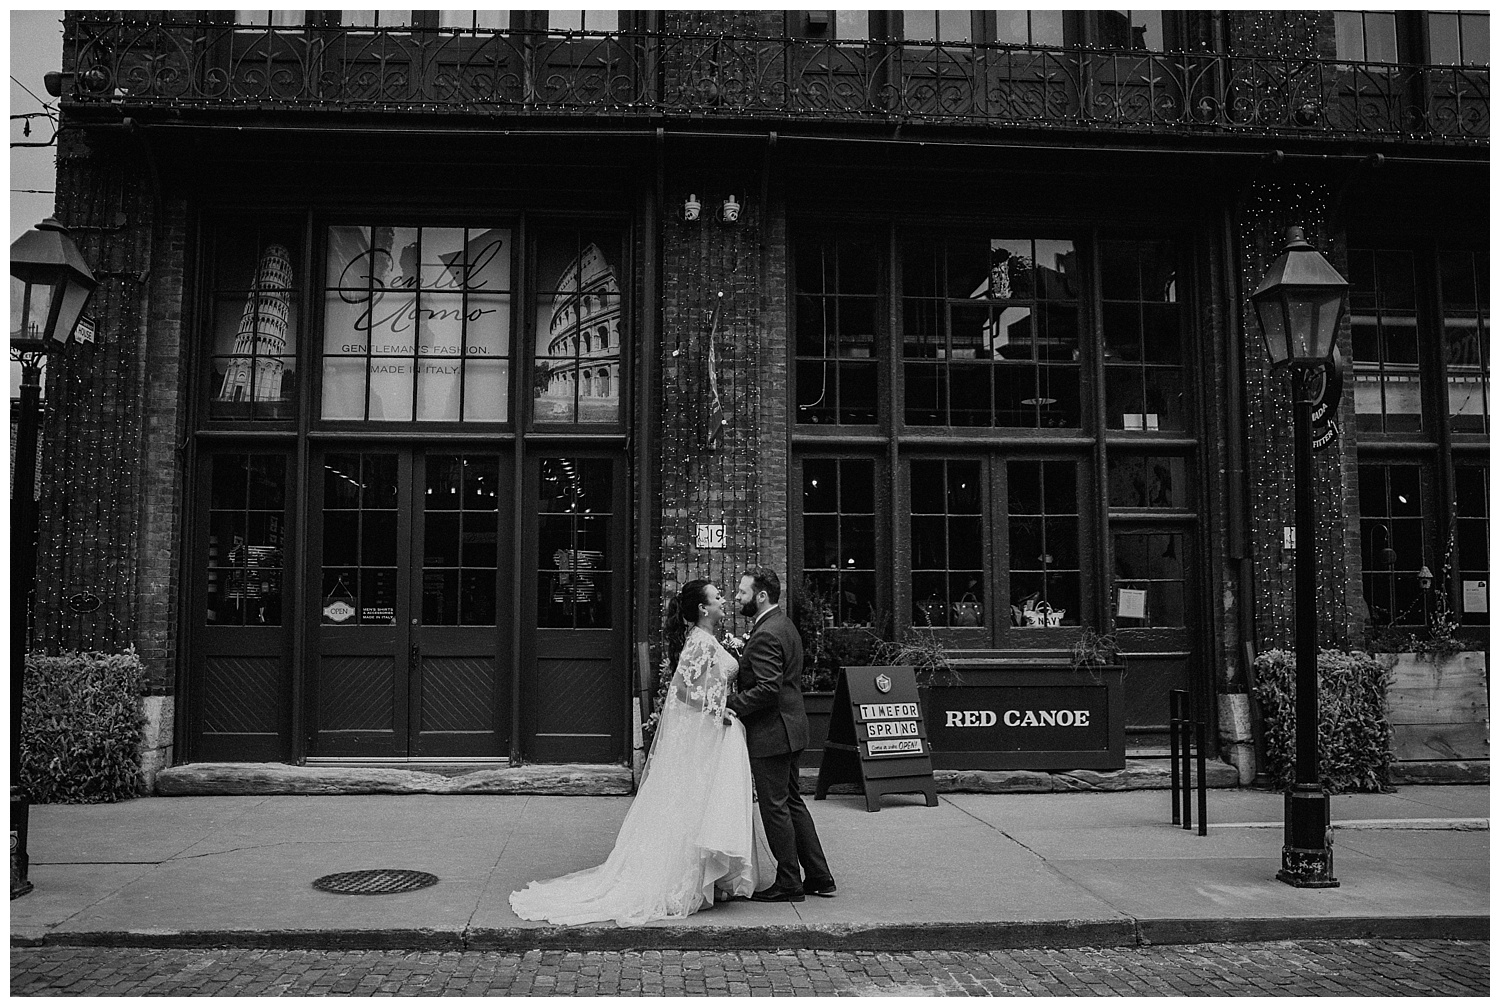 Katie Marie Photography | Archeo Wedding Arta Gallery Wedding | Distillery District Wedding | Toronto Wedding Photographer | Hamilton Toronto Ontario Wedding Photographer |_0070.jpg